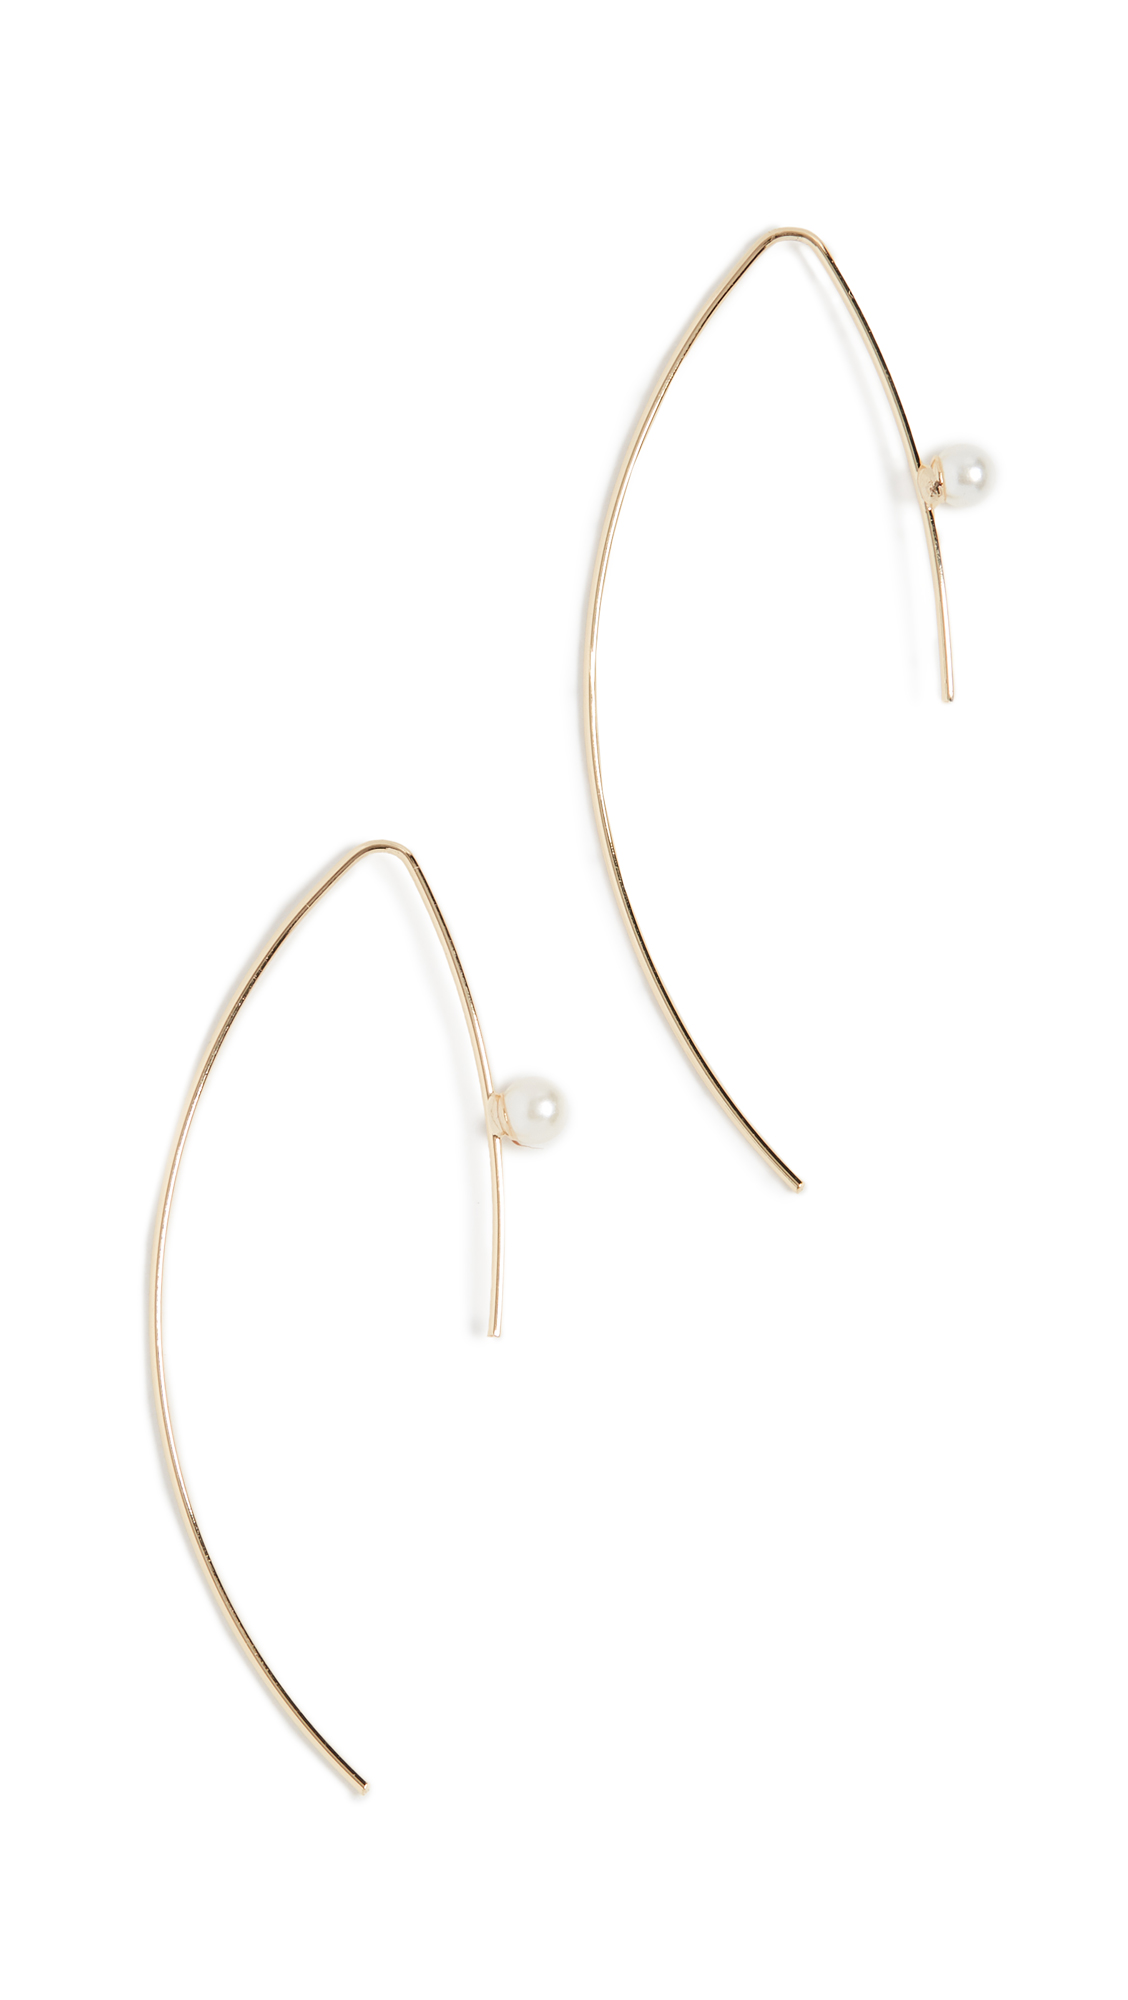 Jules Smith Cultured Pearl Threader Earrings In Yellow Gold